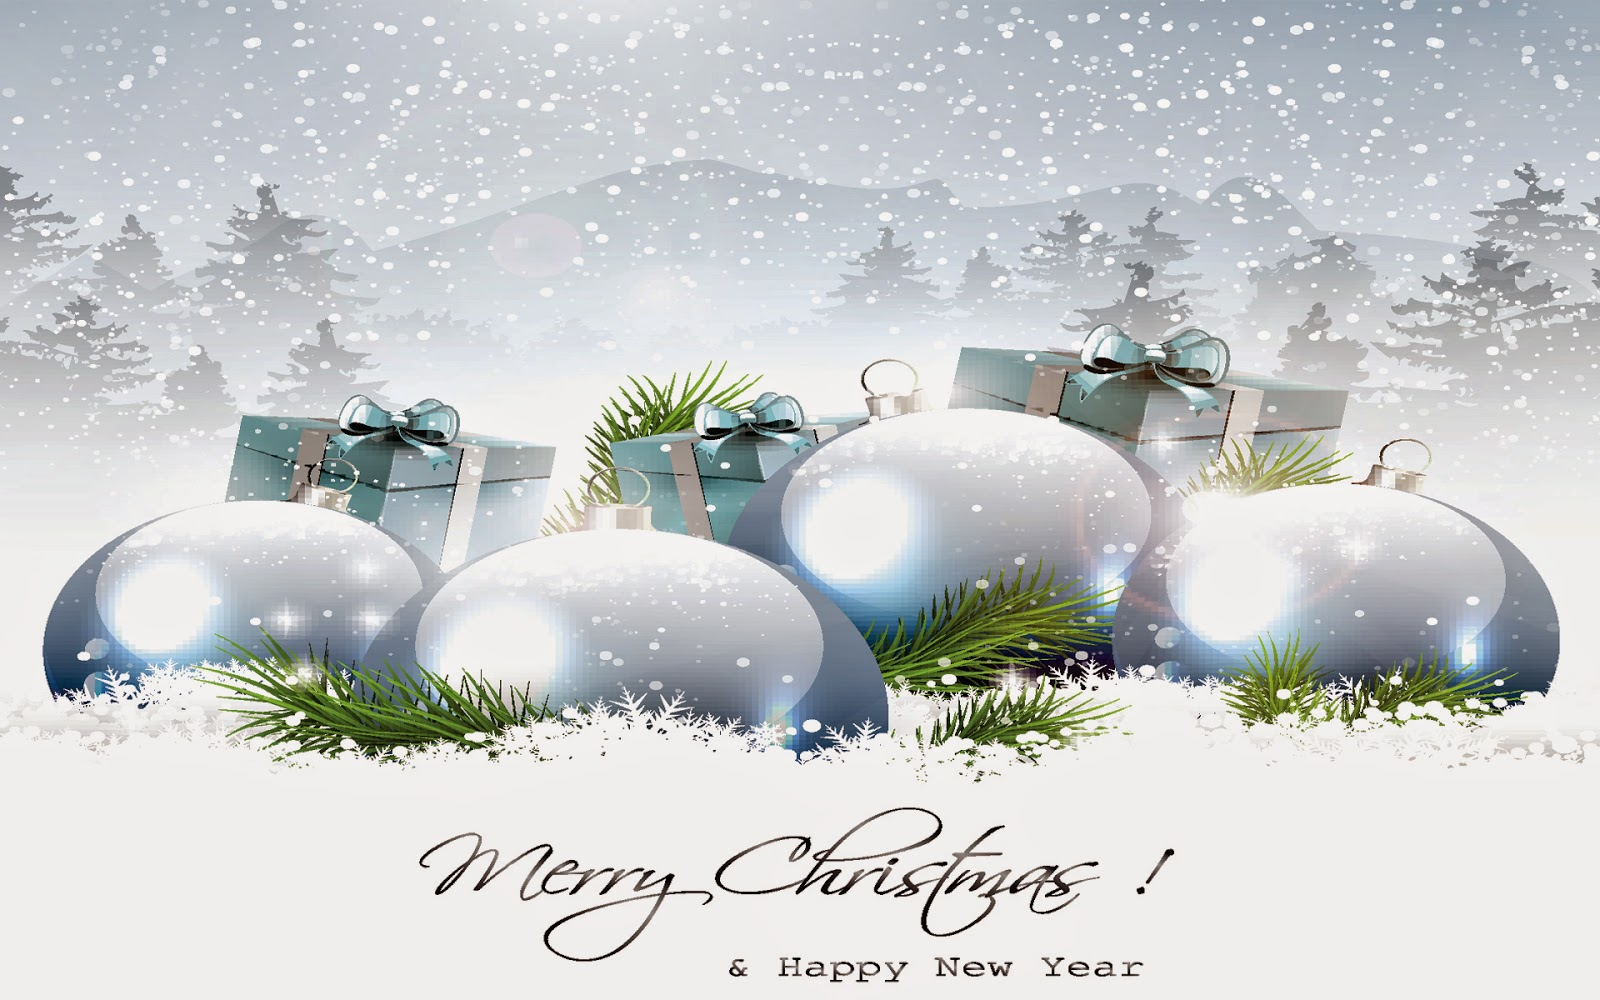 Silver-baubles-with-giftbox-merry-christmas-and-happy-new-year-text-image.jpg